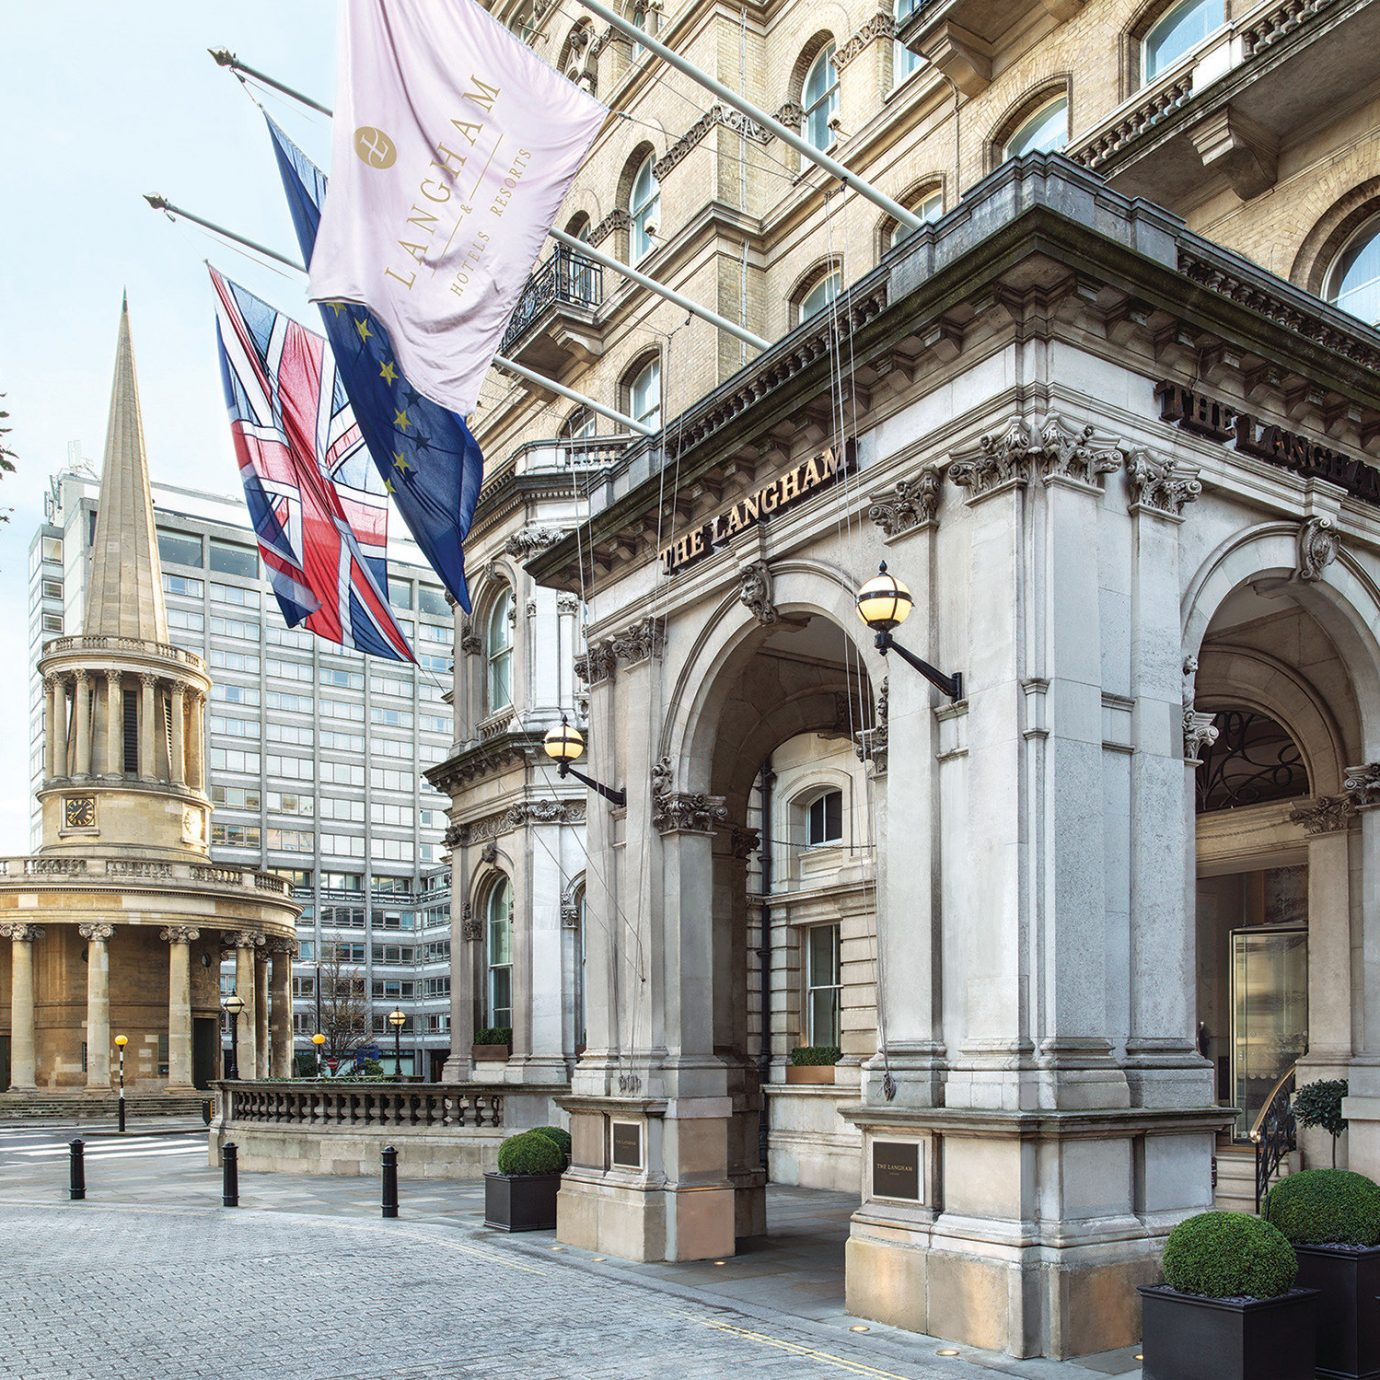 Hotels London Luxury Travel building outdoor landmark classical architecture arch palace facade metropolitan area statue metropolis City window mansion medieval architecture stone